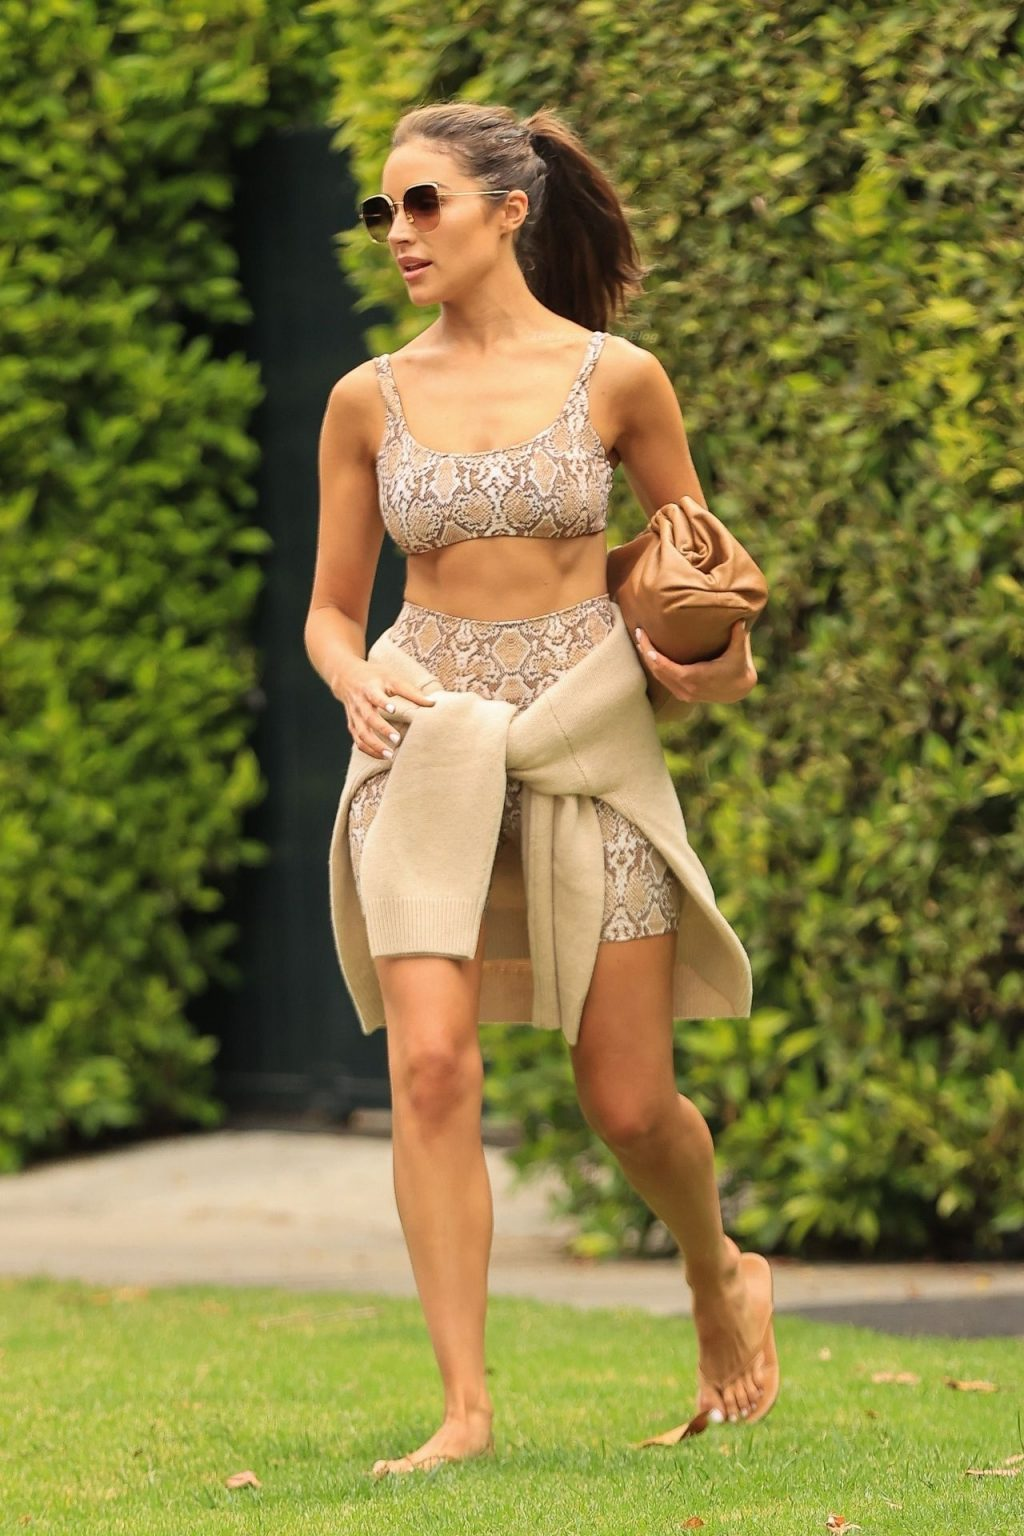 Olivia Culpo Brings Out Her Wild Side in Snake Print Workout Gear (11 Photos)